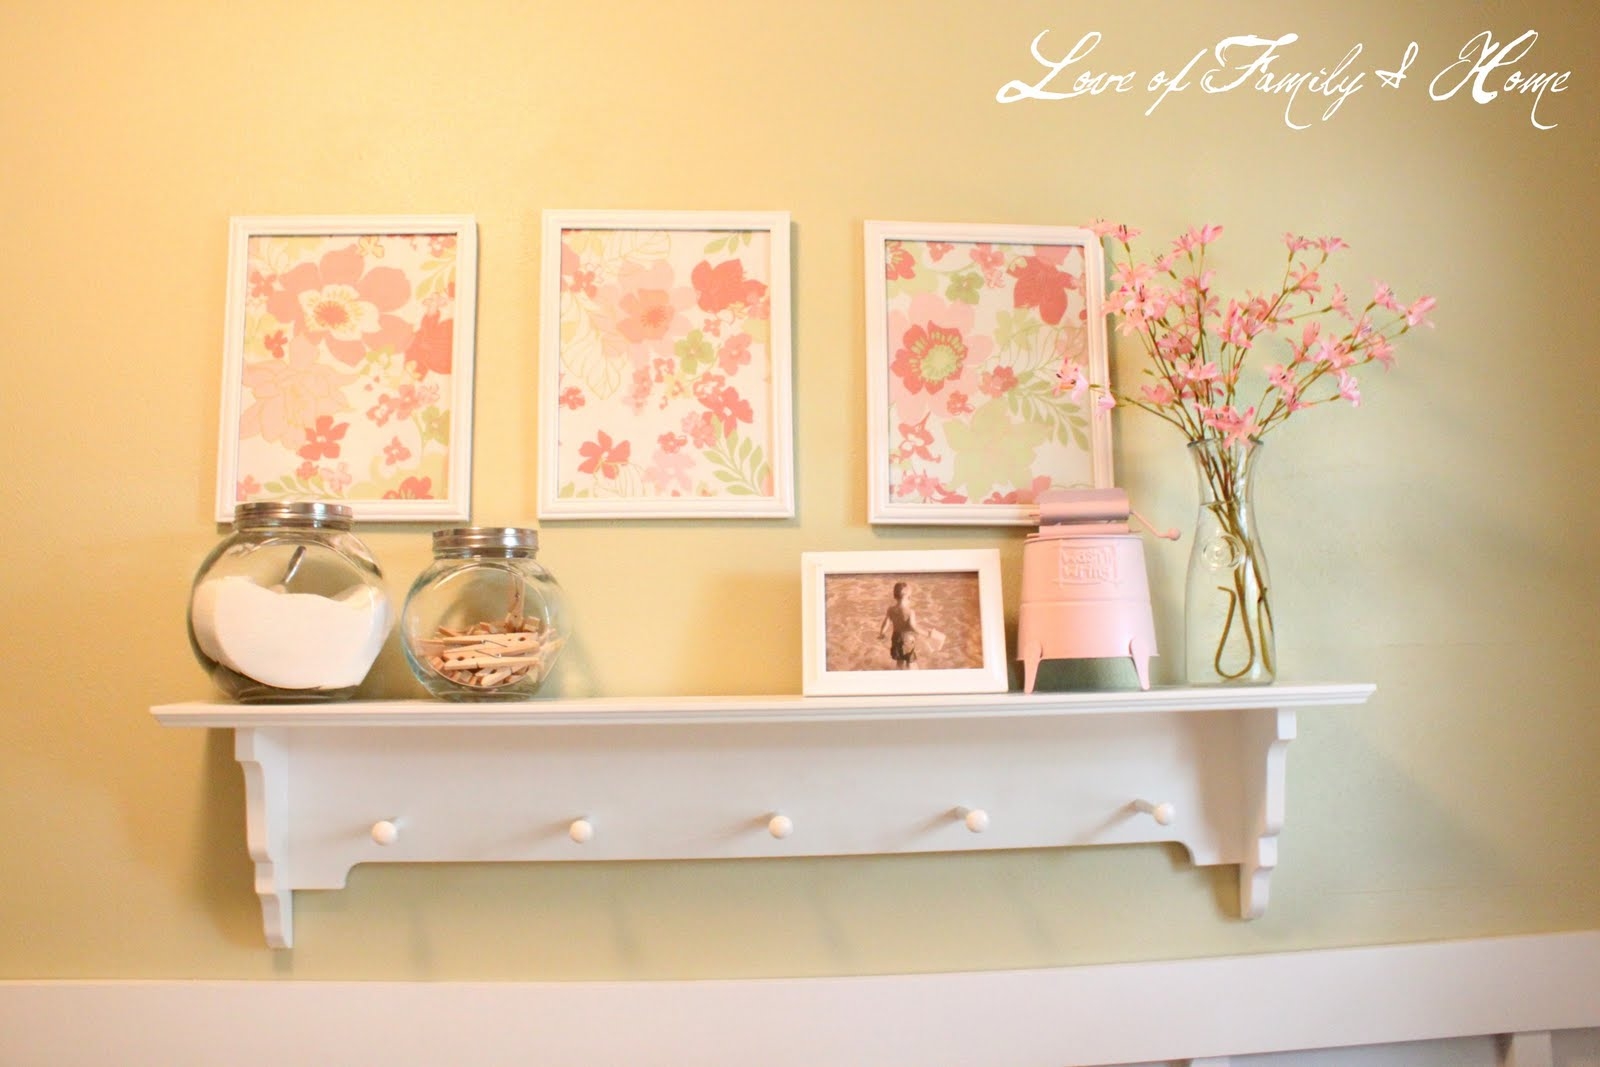 Laundry Room Wall Art Ideas - Elitflat